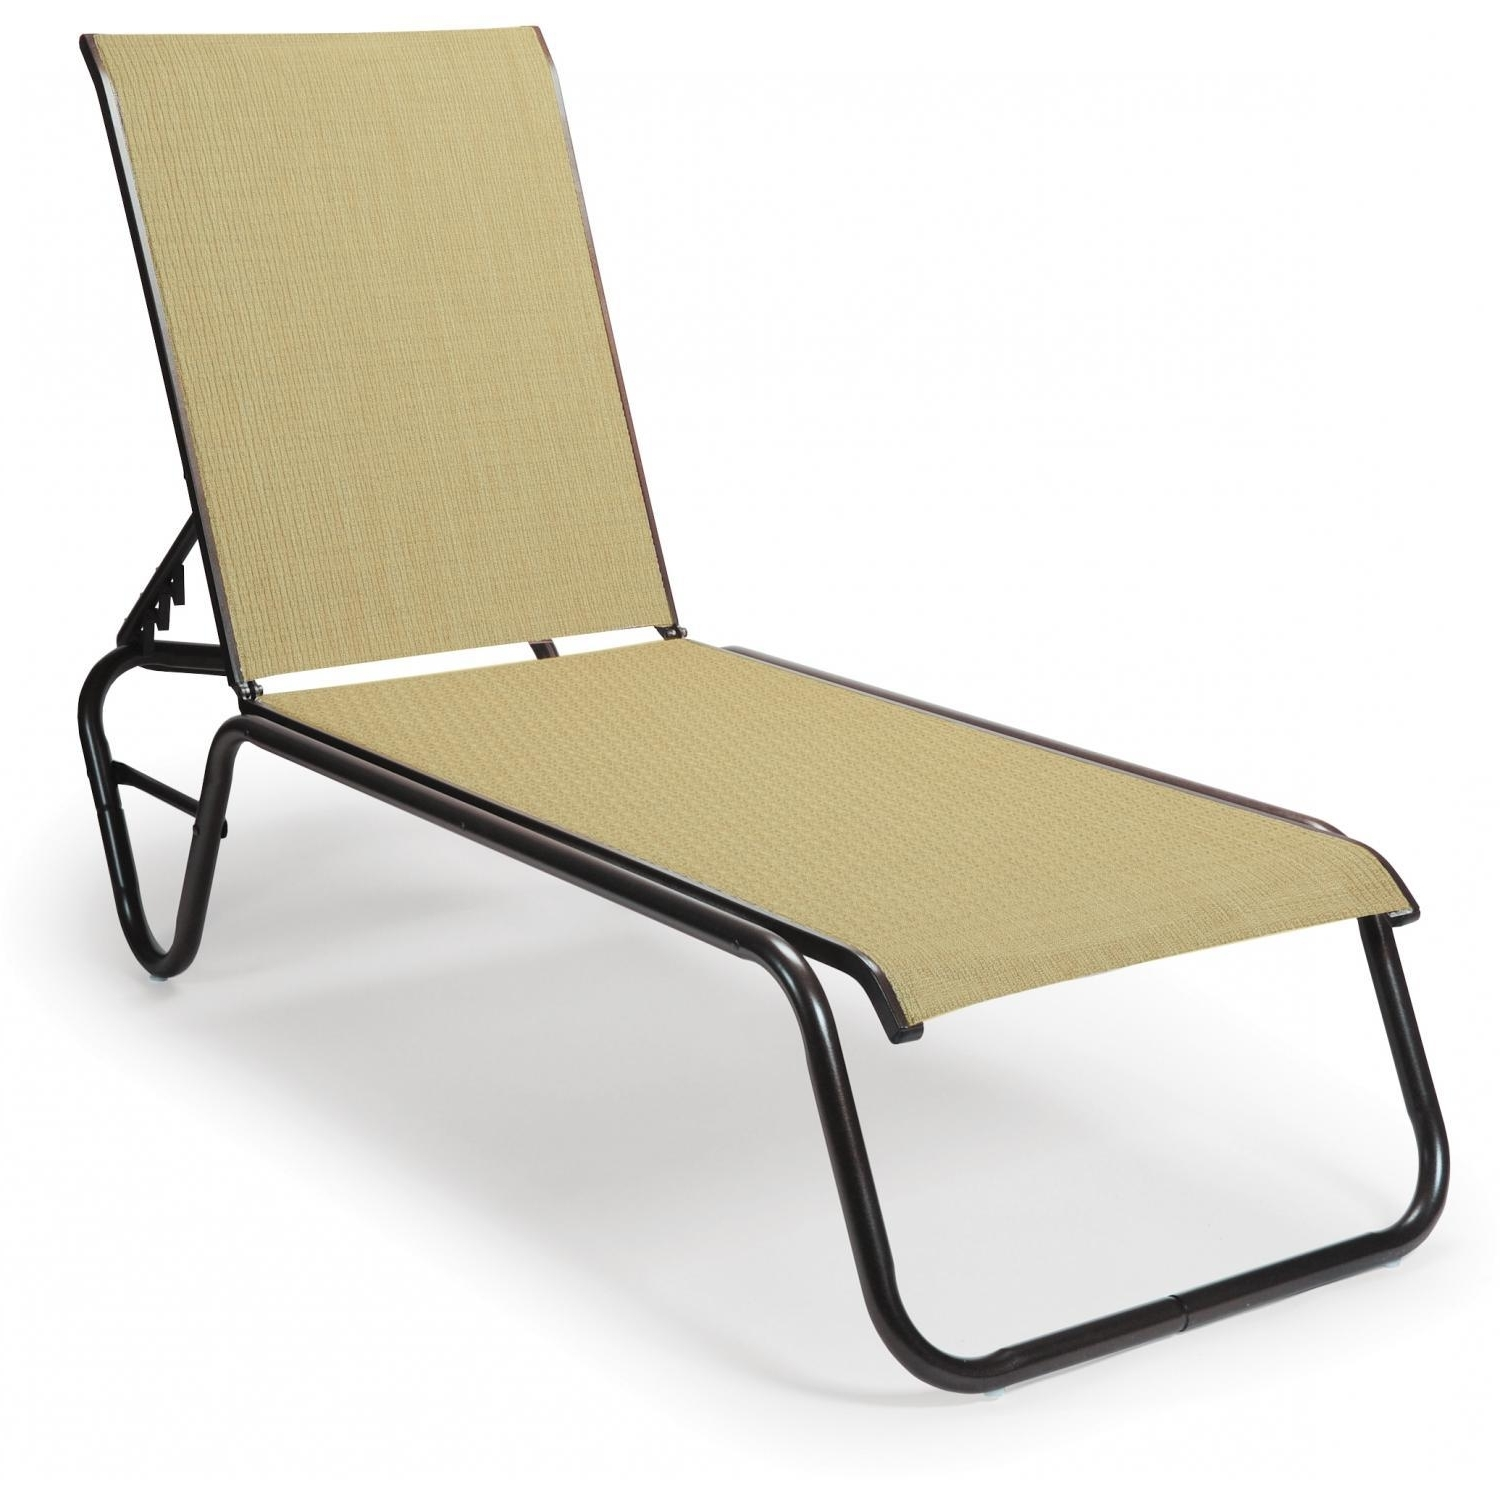 Telescope Casual Gardenella Sling Patio Stacking Armless Chaise With Preferred Sling Chaise Lounge Chairs (View 12 of 15)